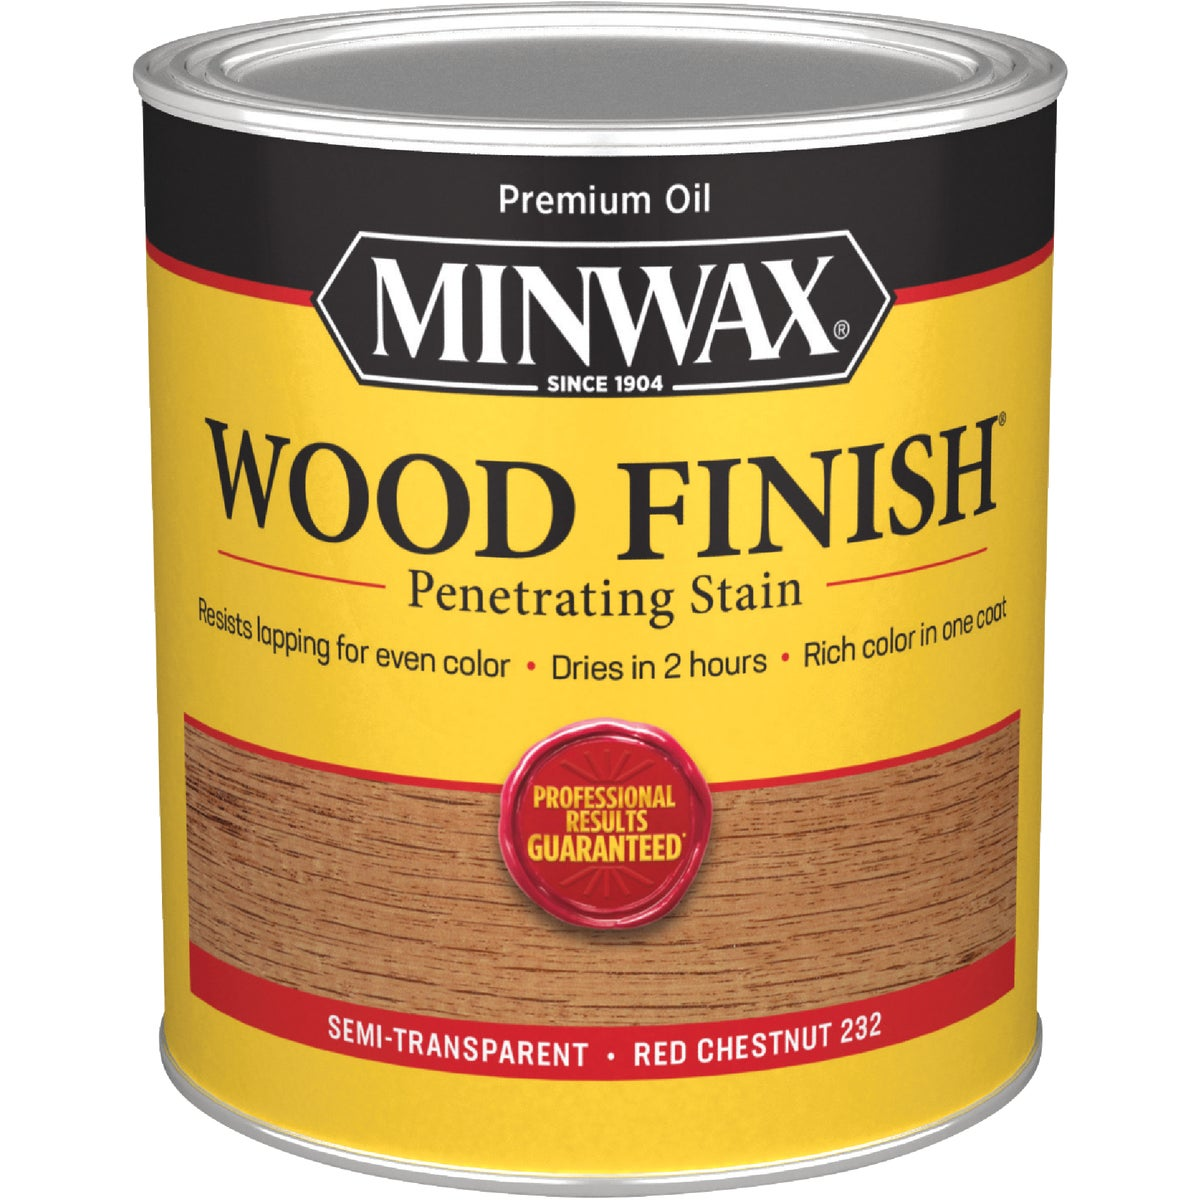 RED CHESTNUT WOOD STAIN - 700464444 by Minwax Company